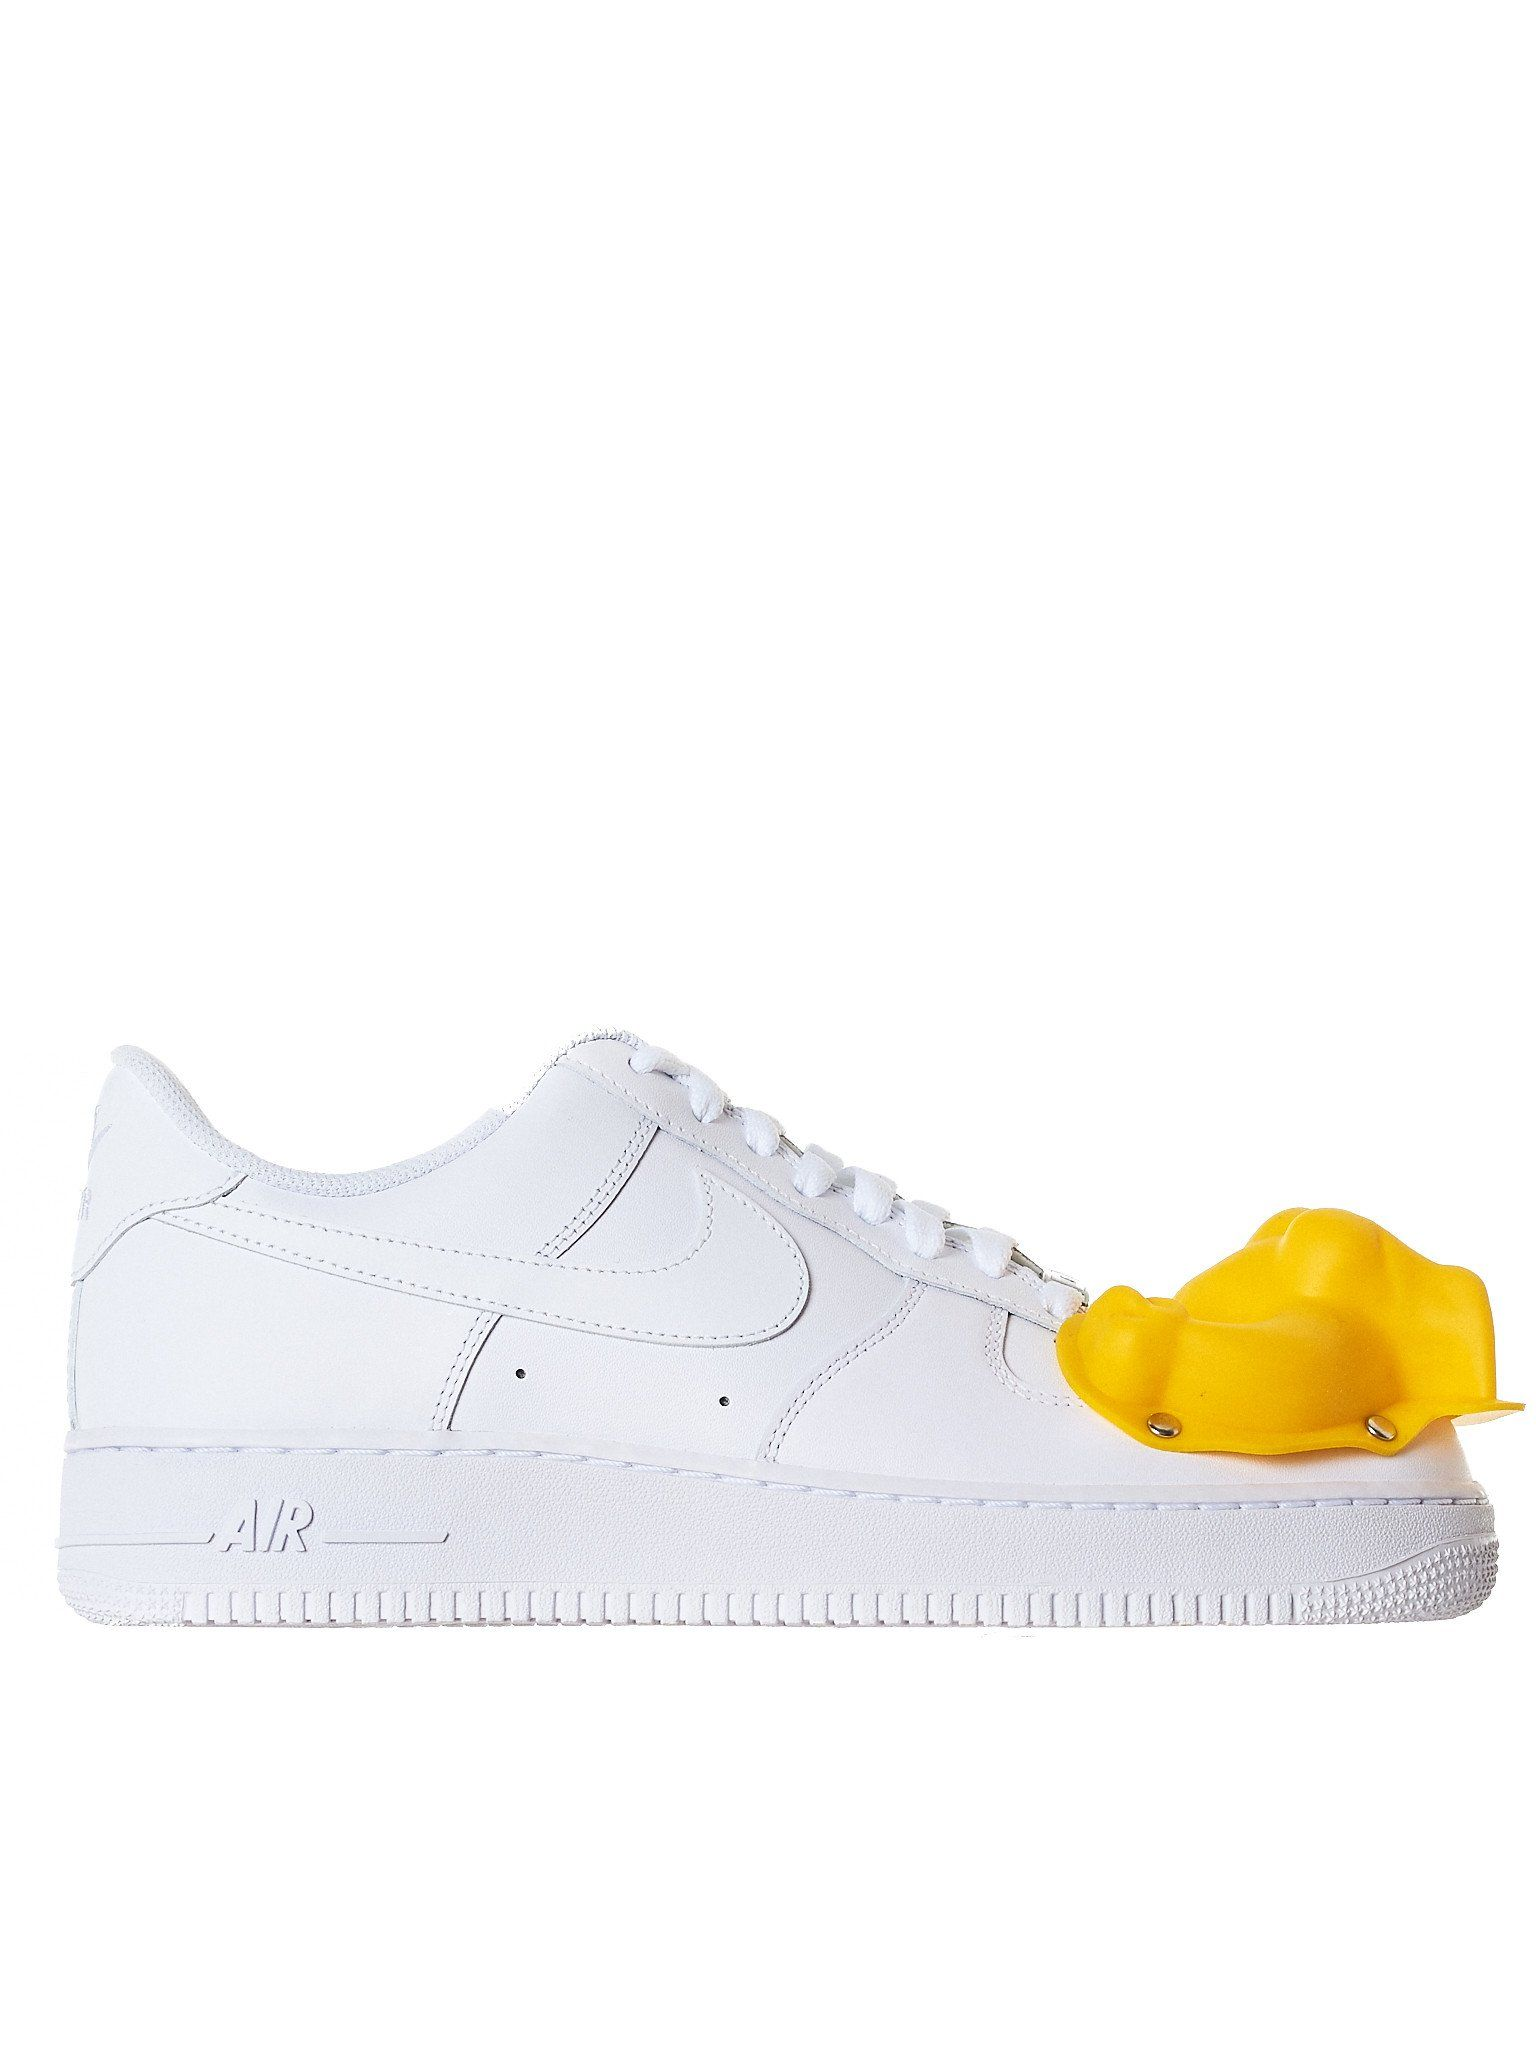 Nike x CDG Comme des Garçons x Nike Air Force Ones in white featuring a  silicone